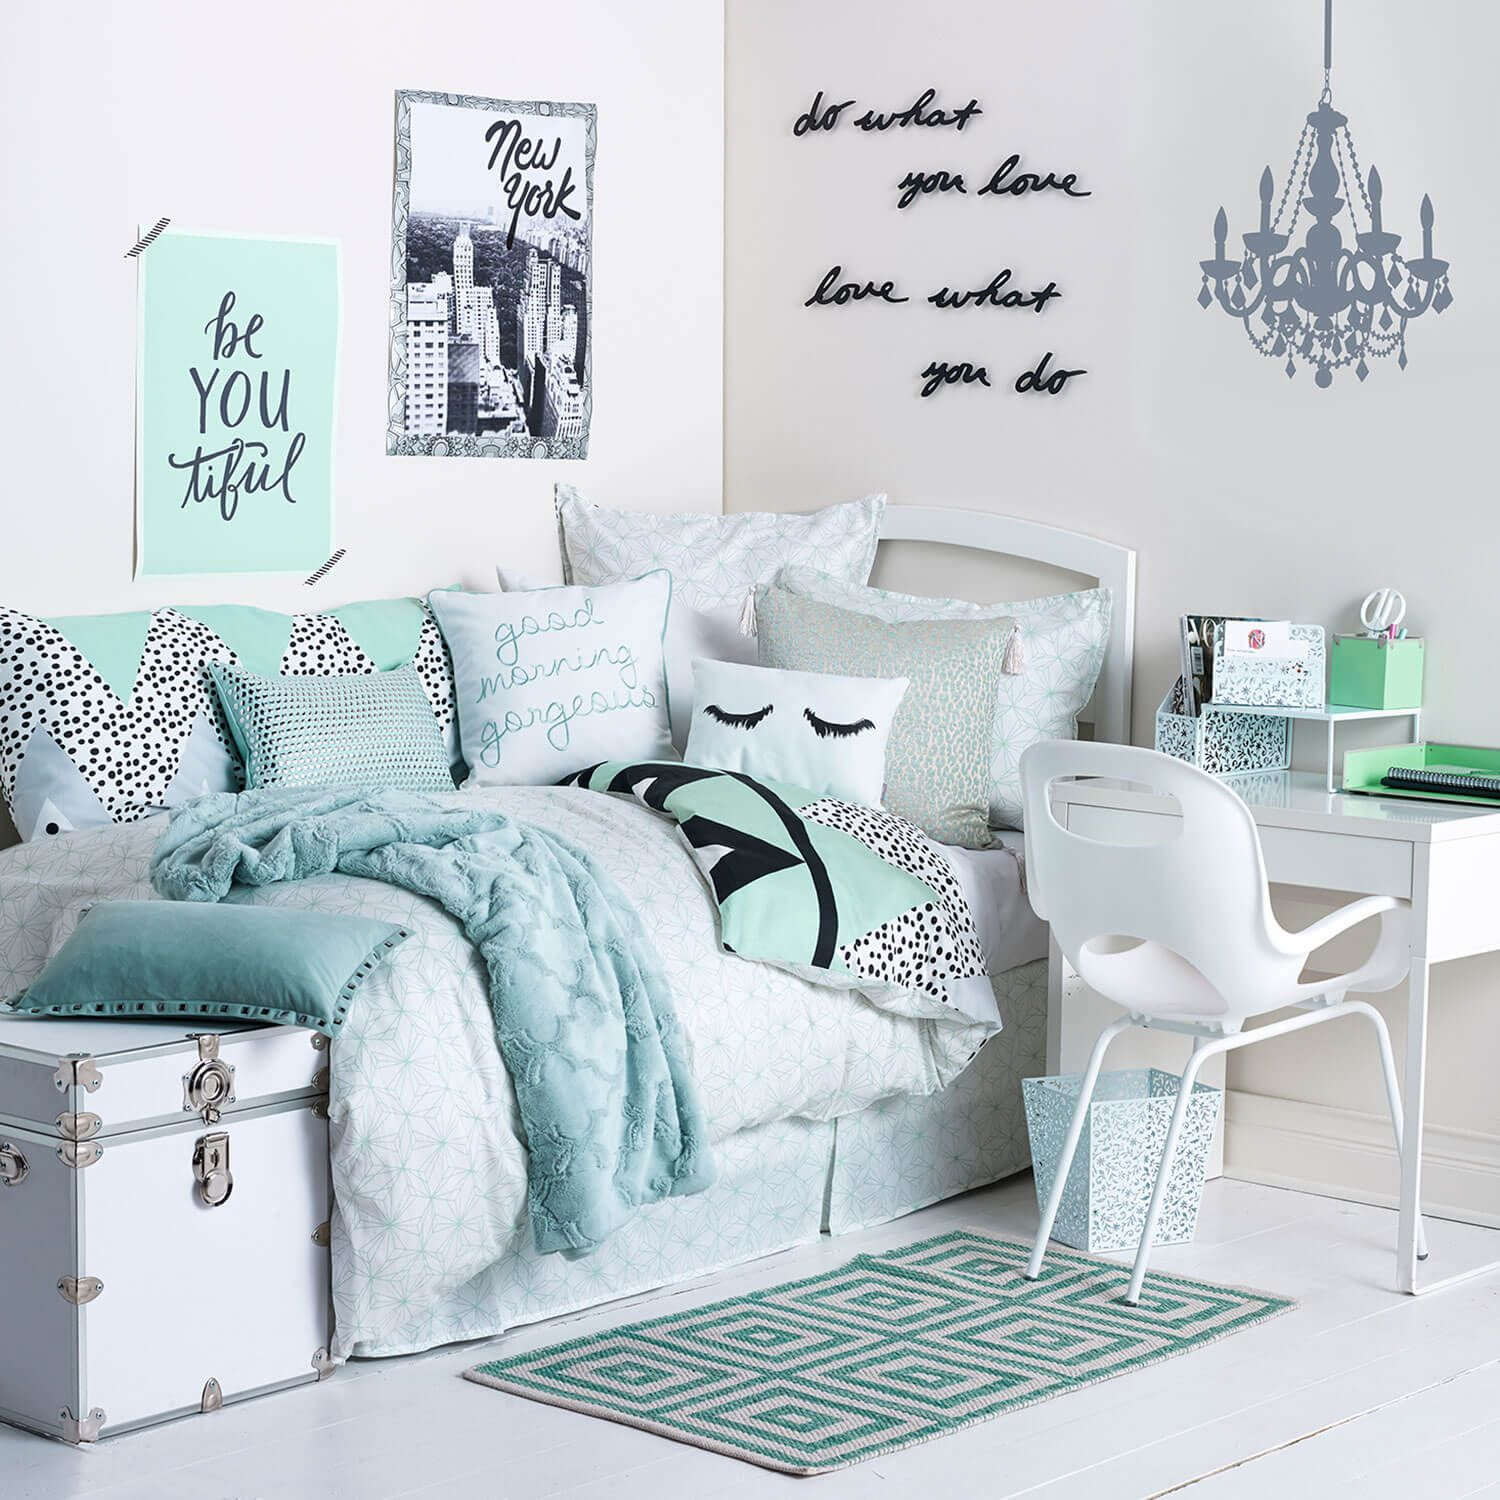 Bon Uptown Girl Room | Available On Dormify.com